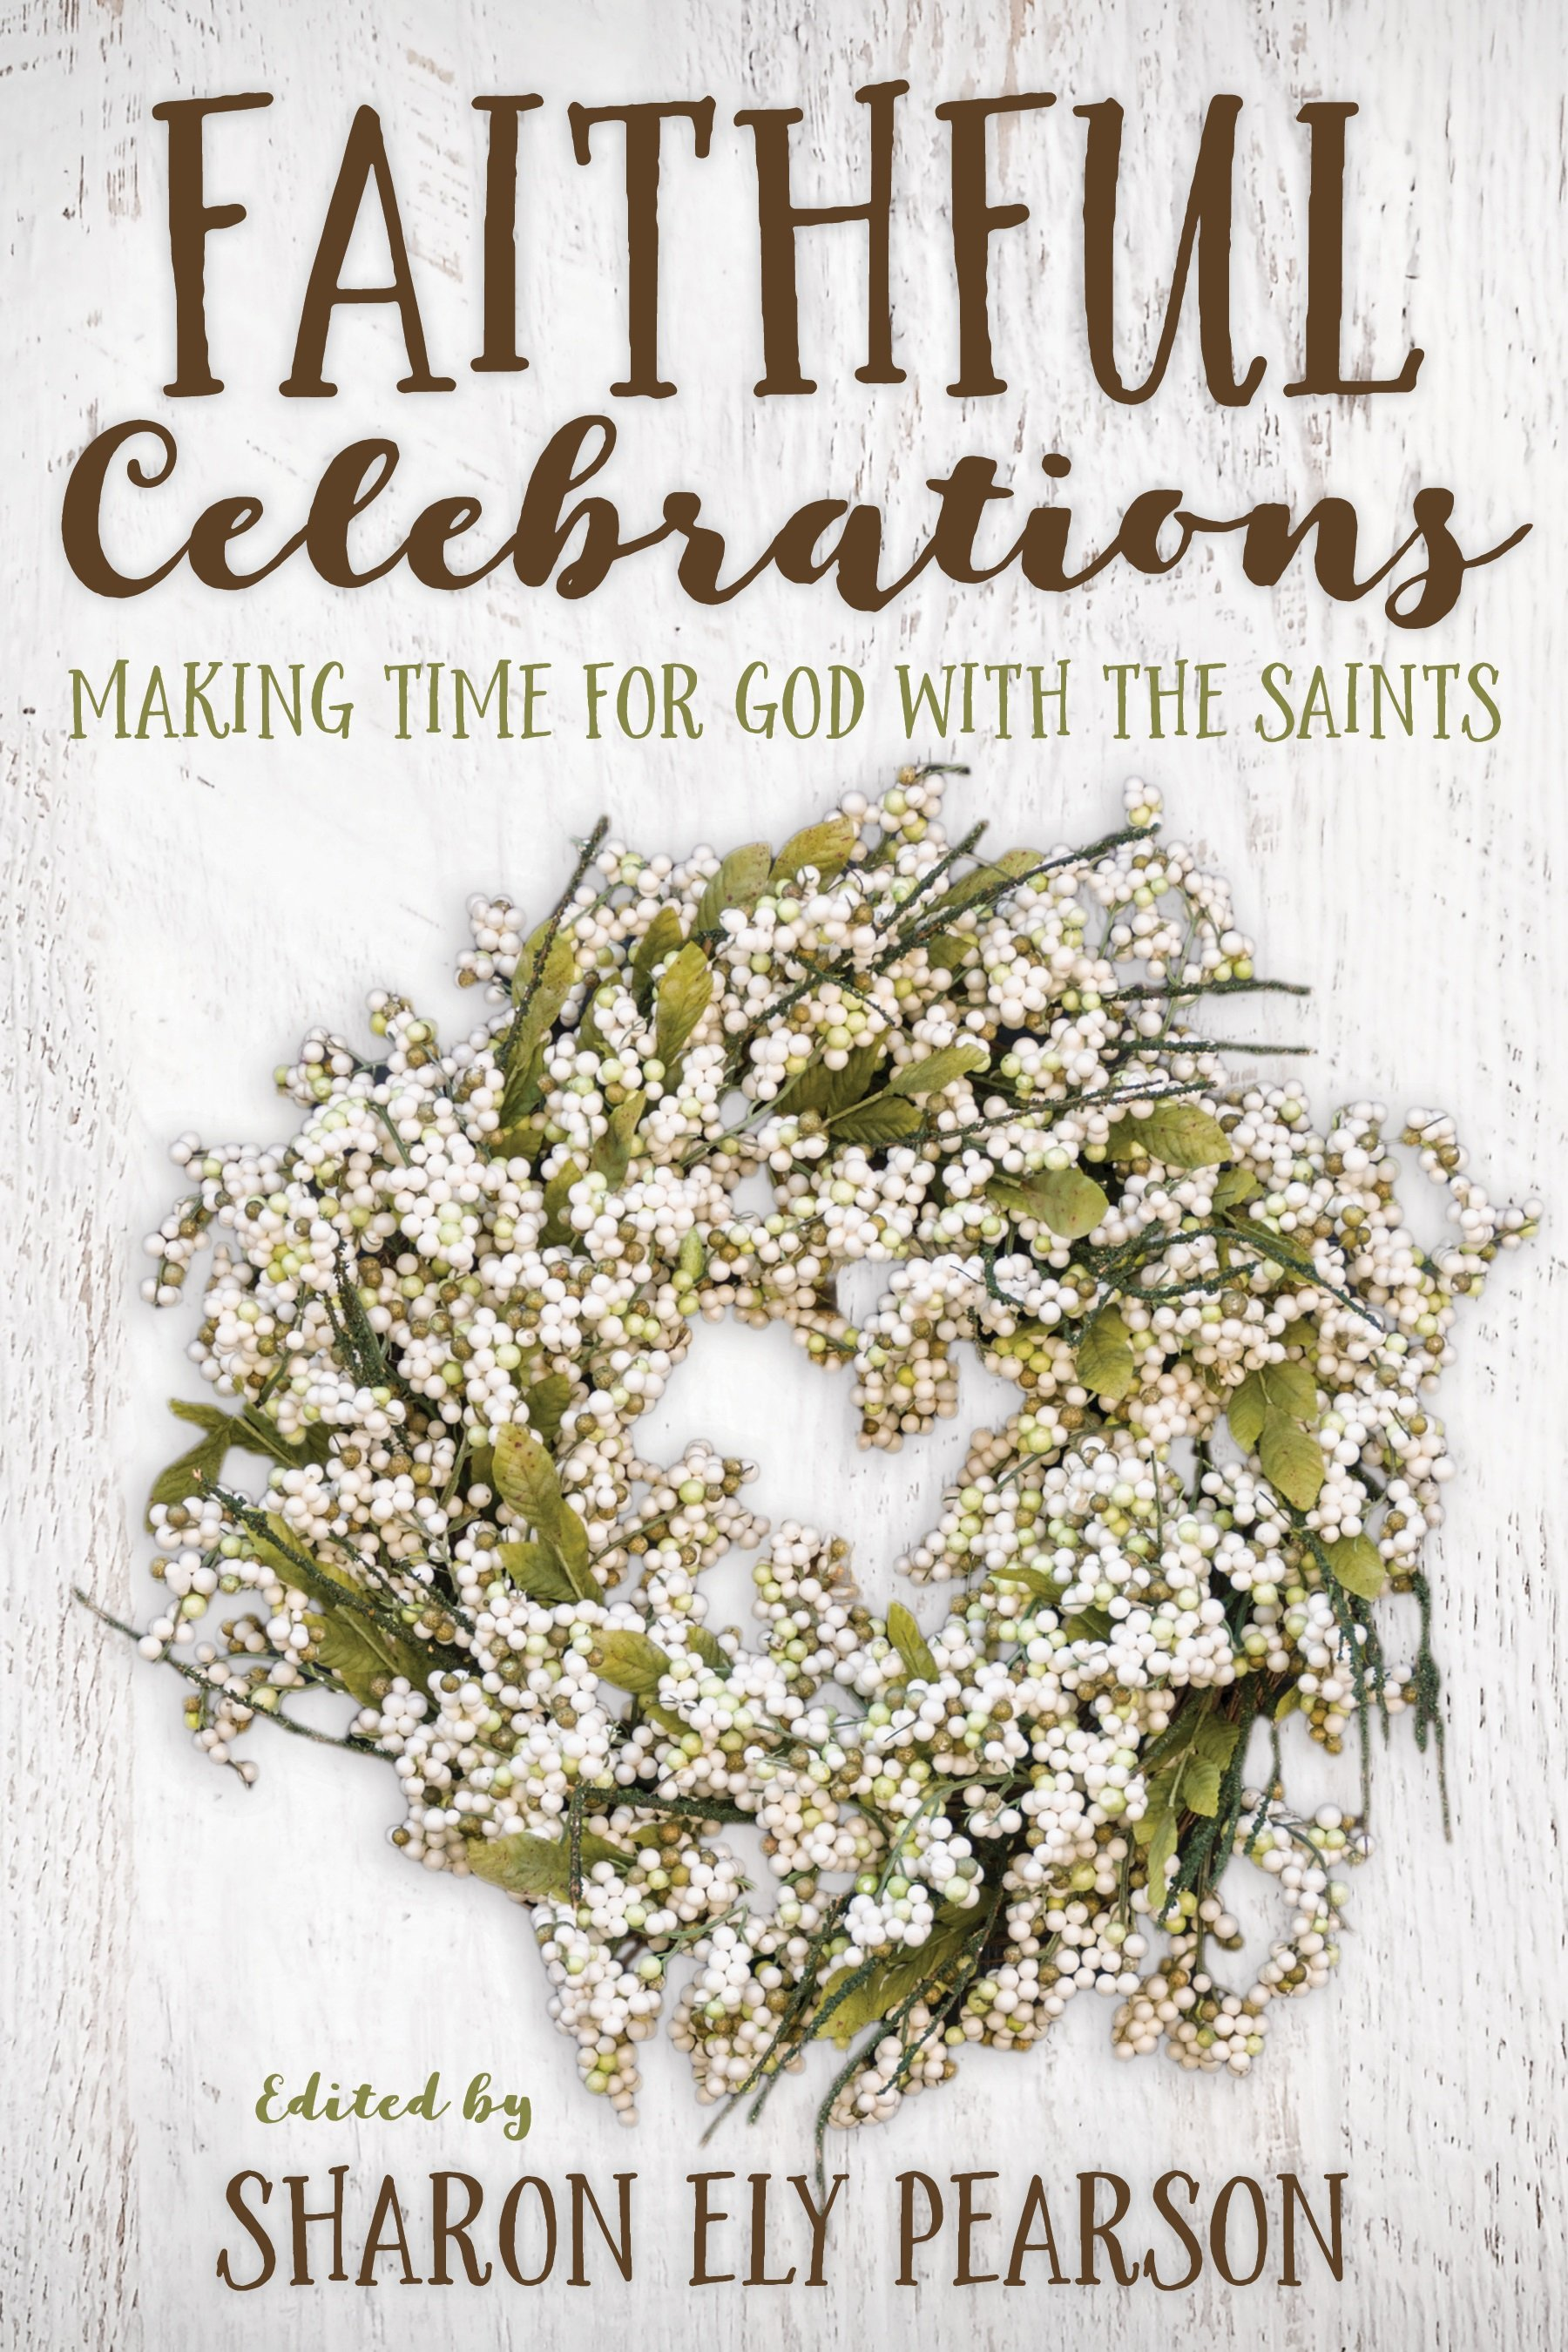 Churchpublishing Org Faithful Celebrations Saints